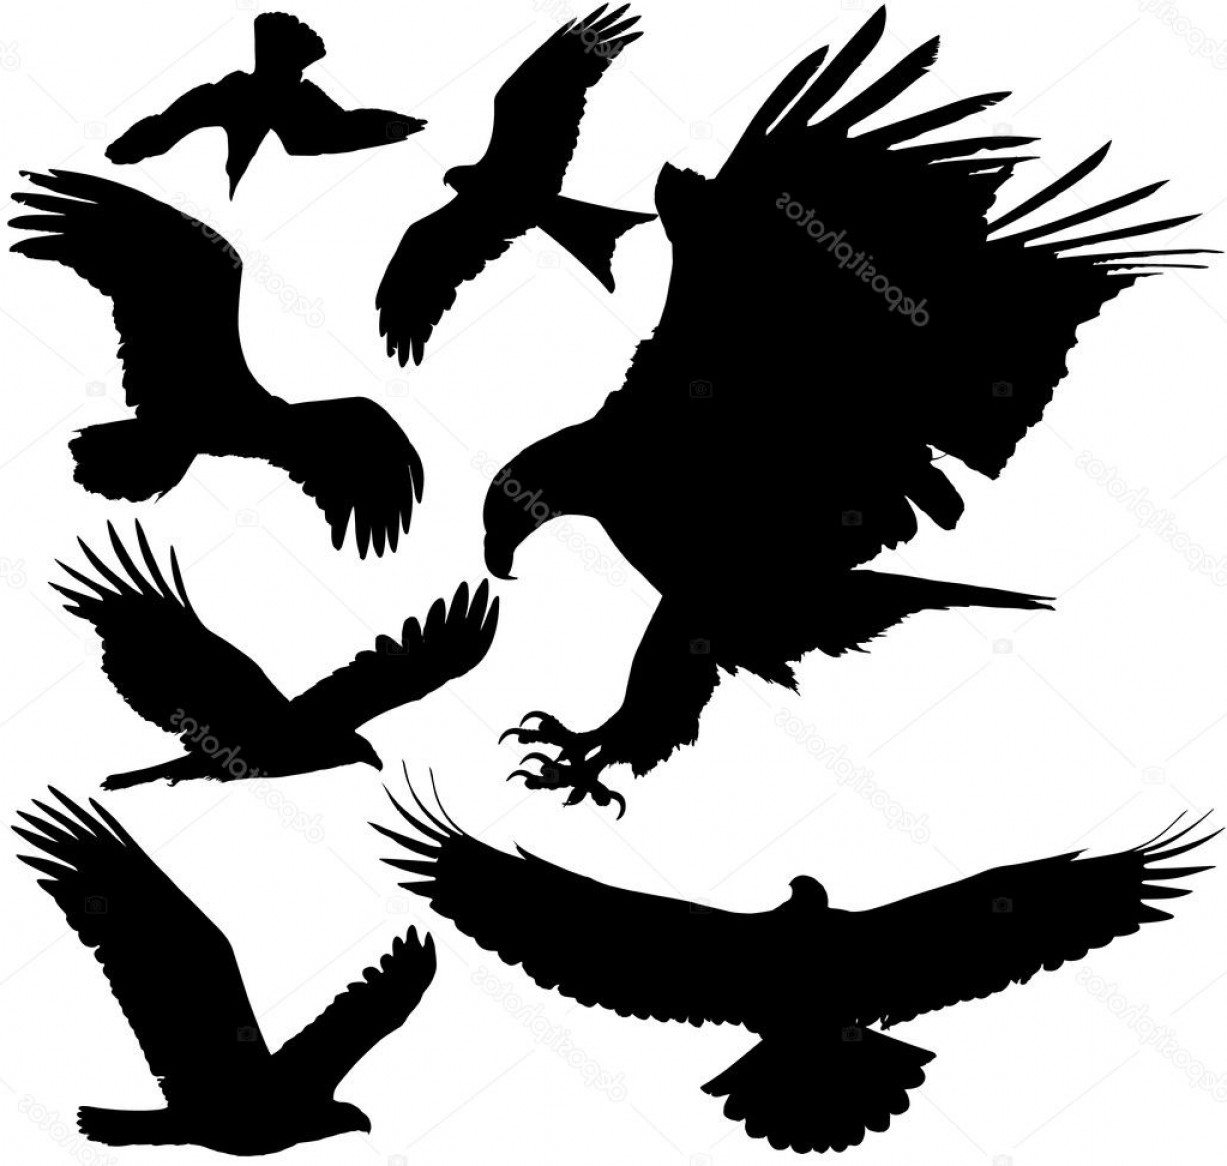 Falcon Silhouette Vector: Stock Illustration Birds Of Prey Eagle Hawk